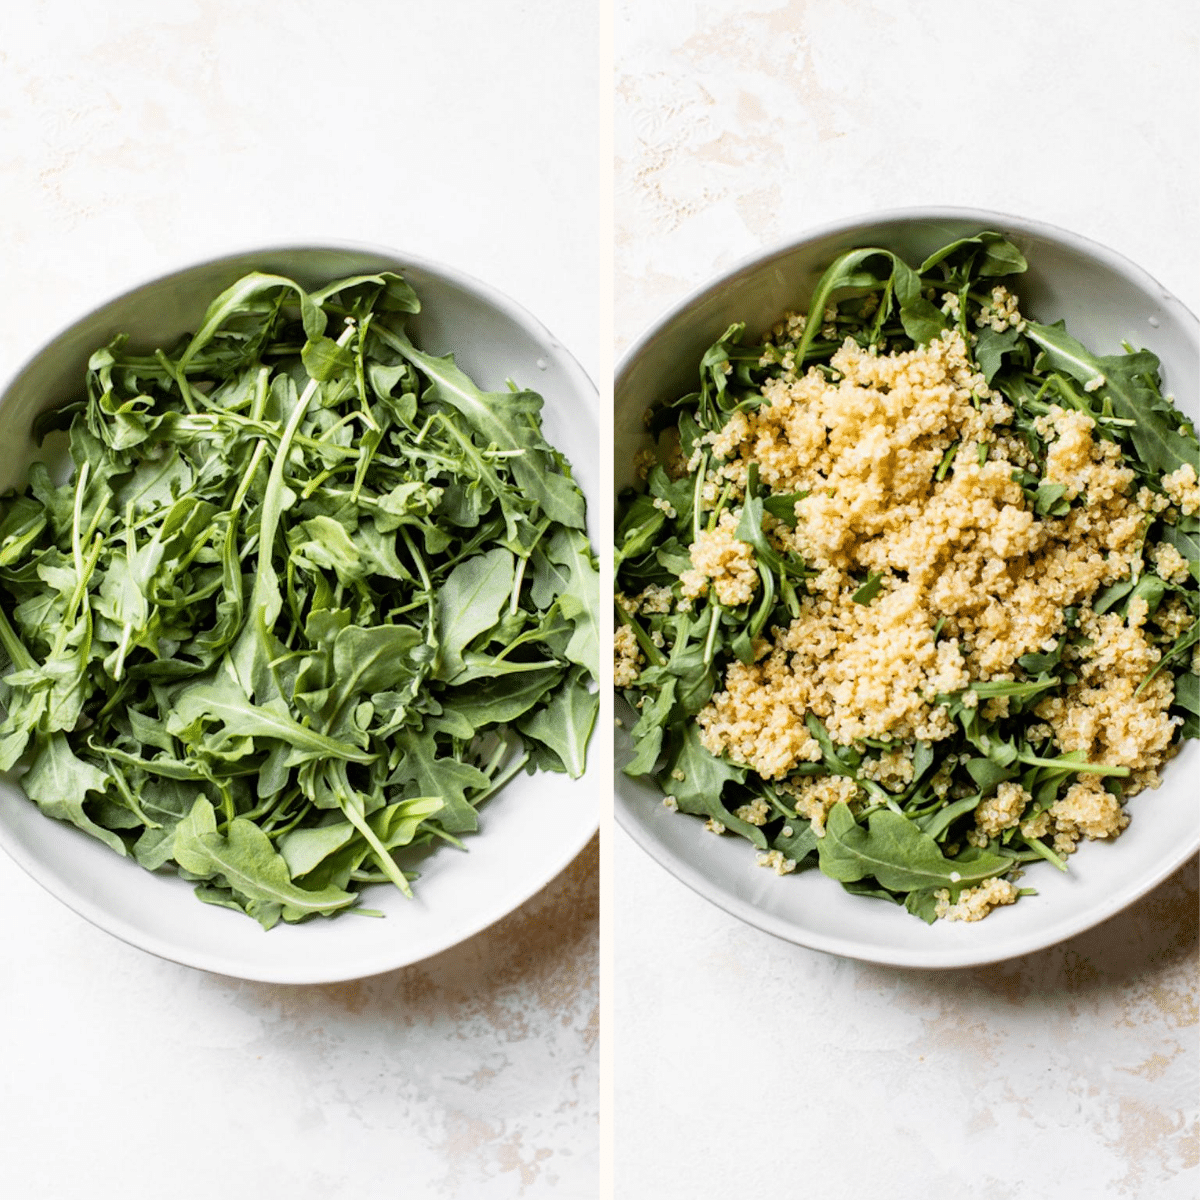 A bowl of arugula and quinoa